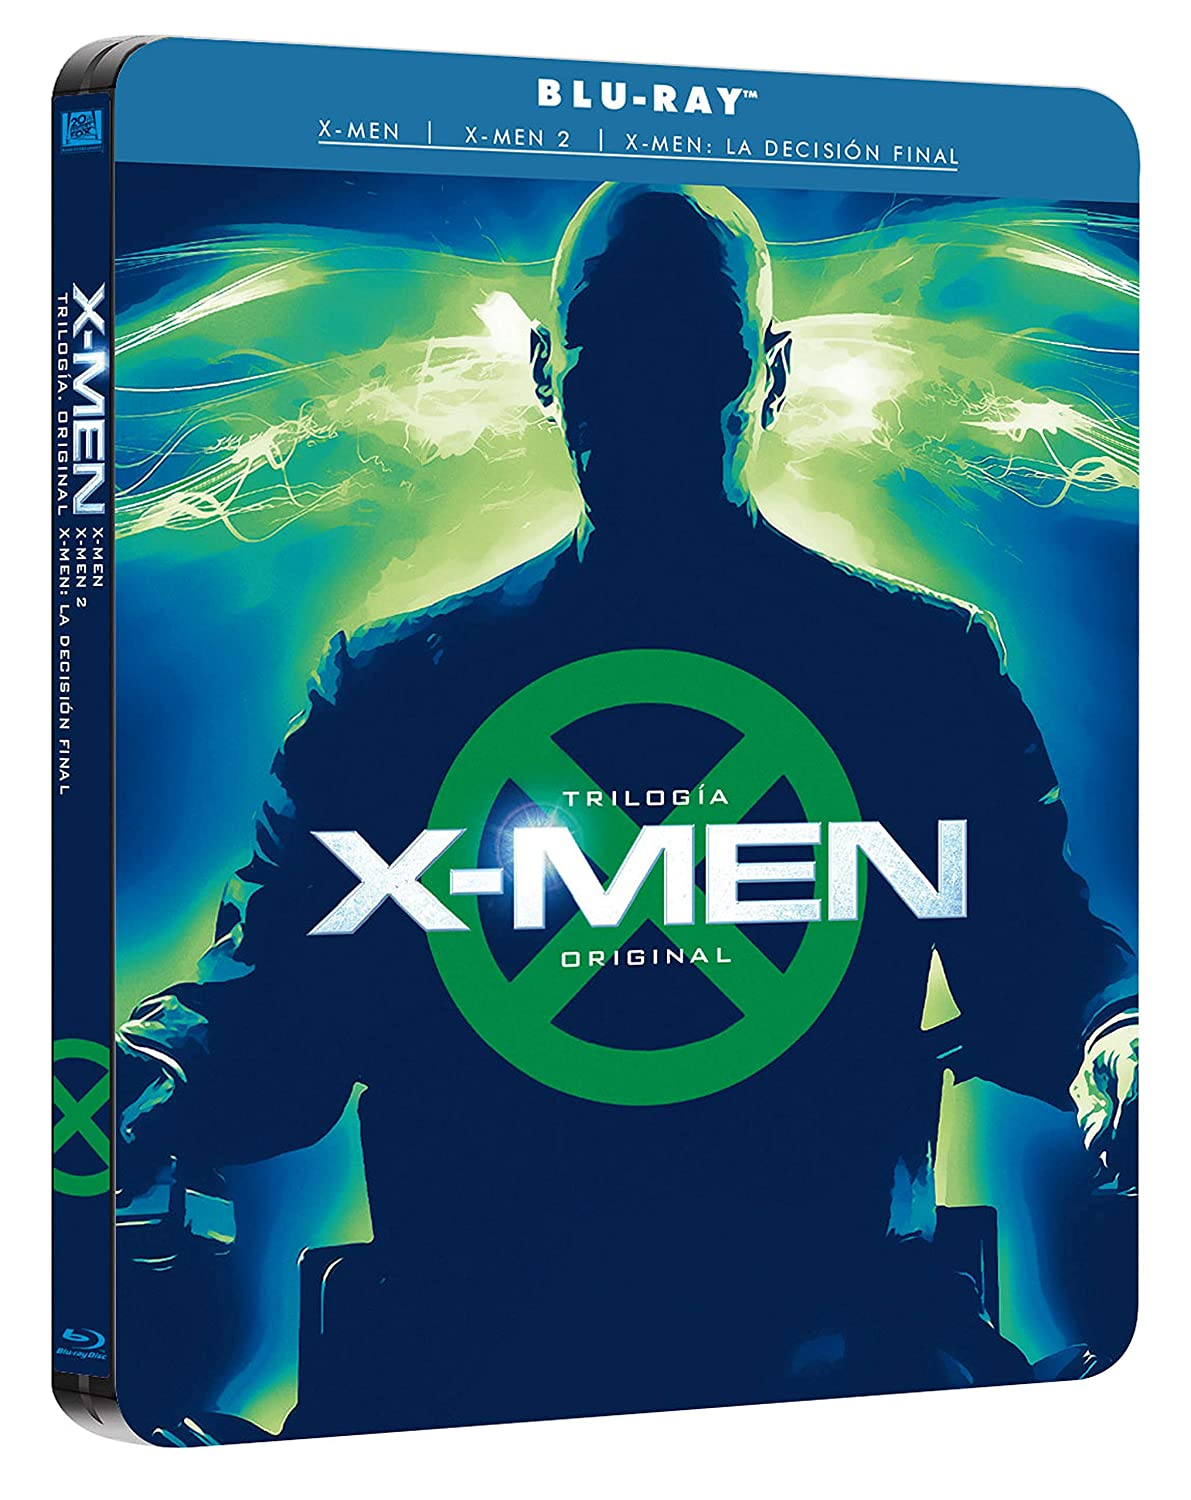 Pack X-Men Trilogía Original Black Mtl Ed Blu-Ray Blu-ray: Amazon ...